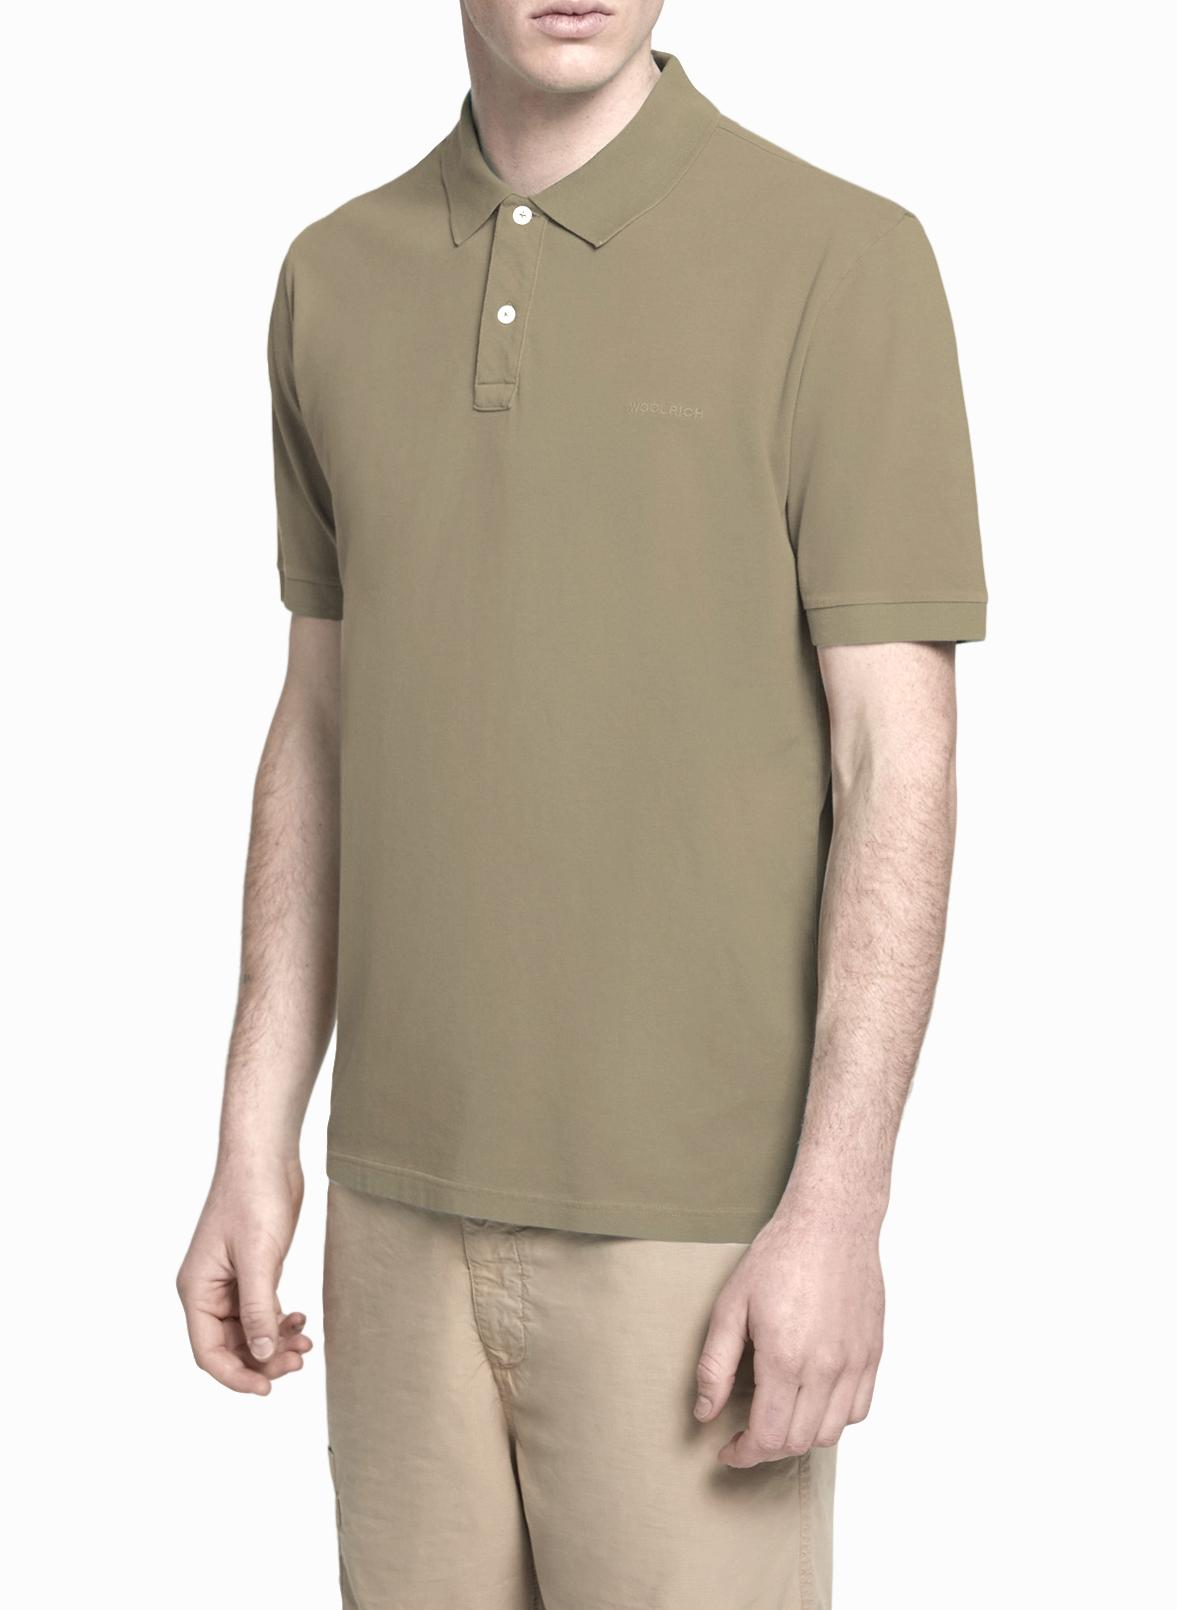 WOORICH POLO UOMO Men's Mackinack Polo Shirt Colore: LIKENE